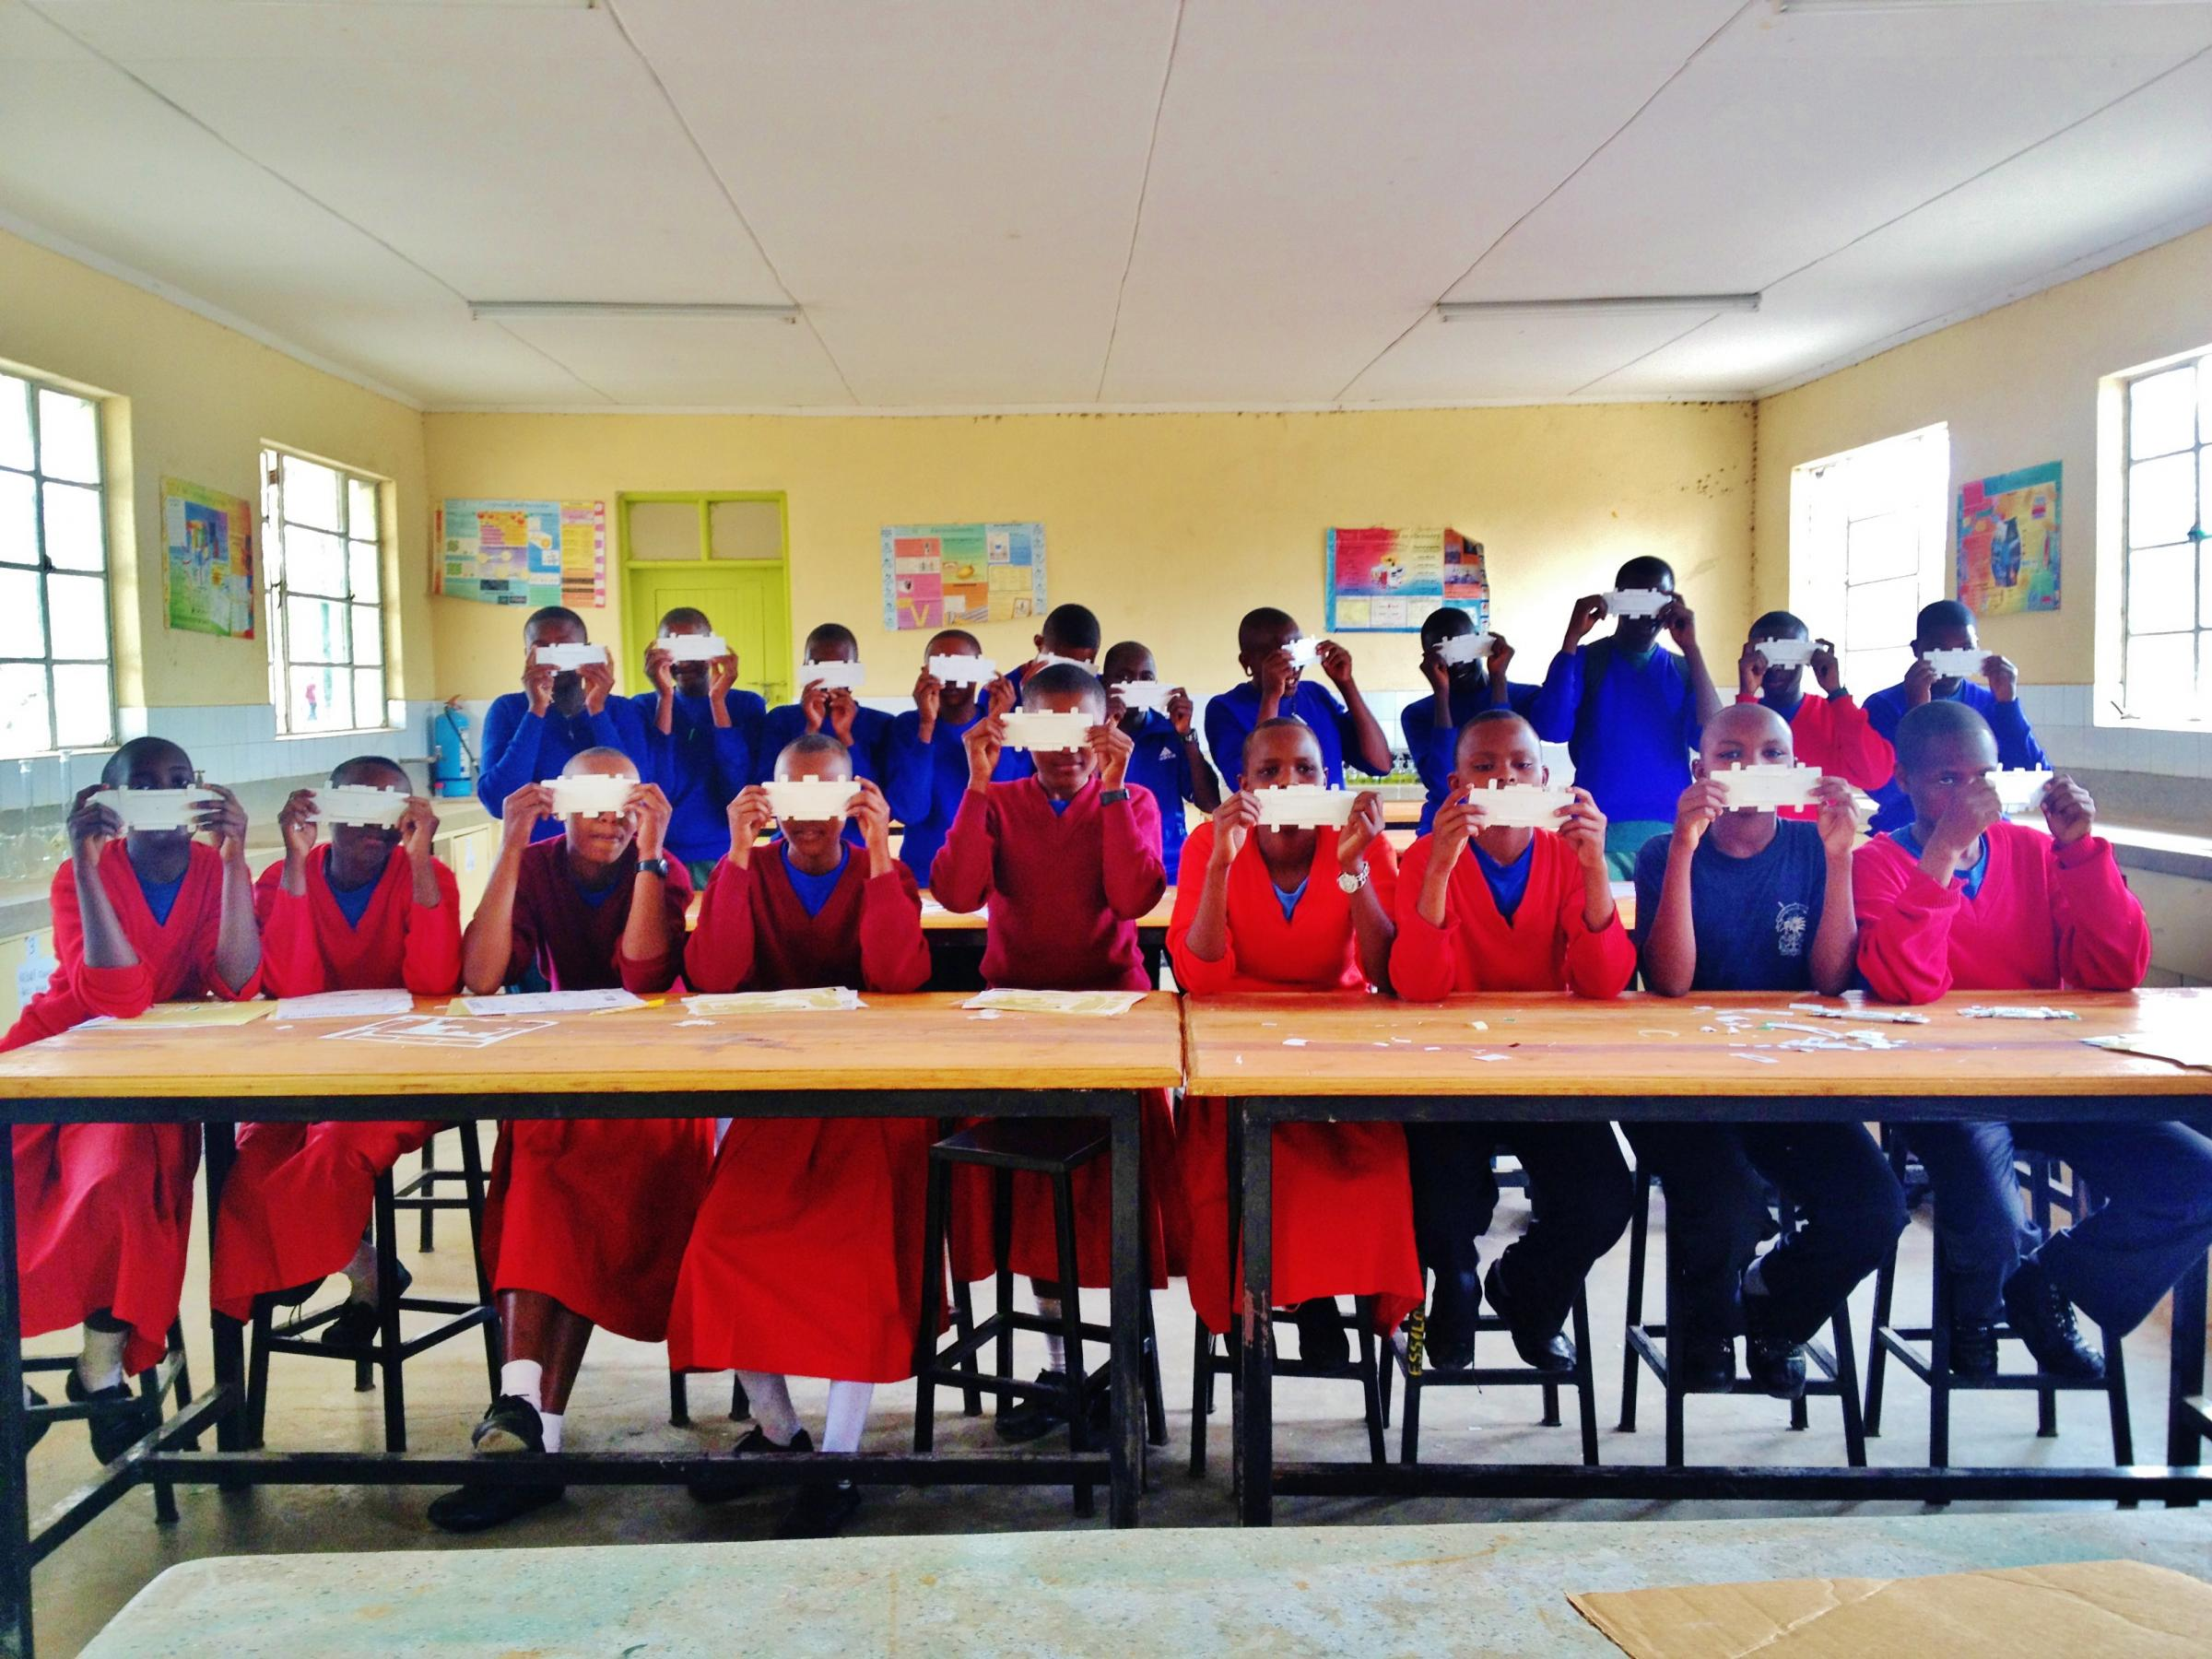 A classroom of students using the Foldscope